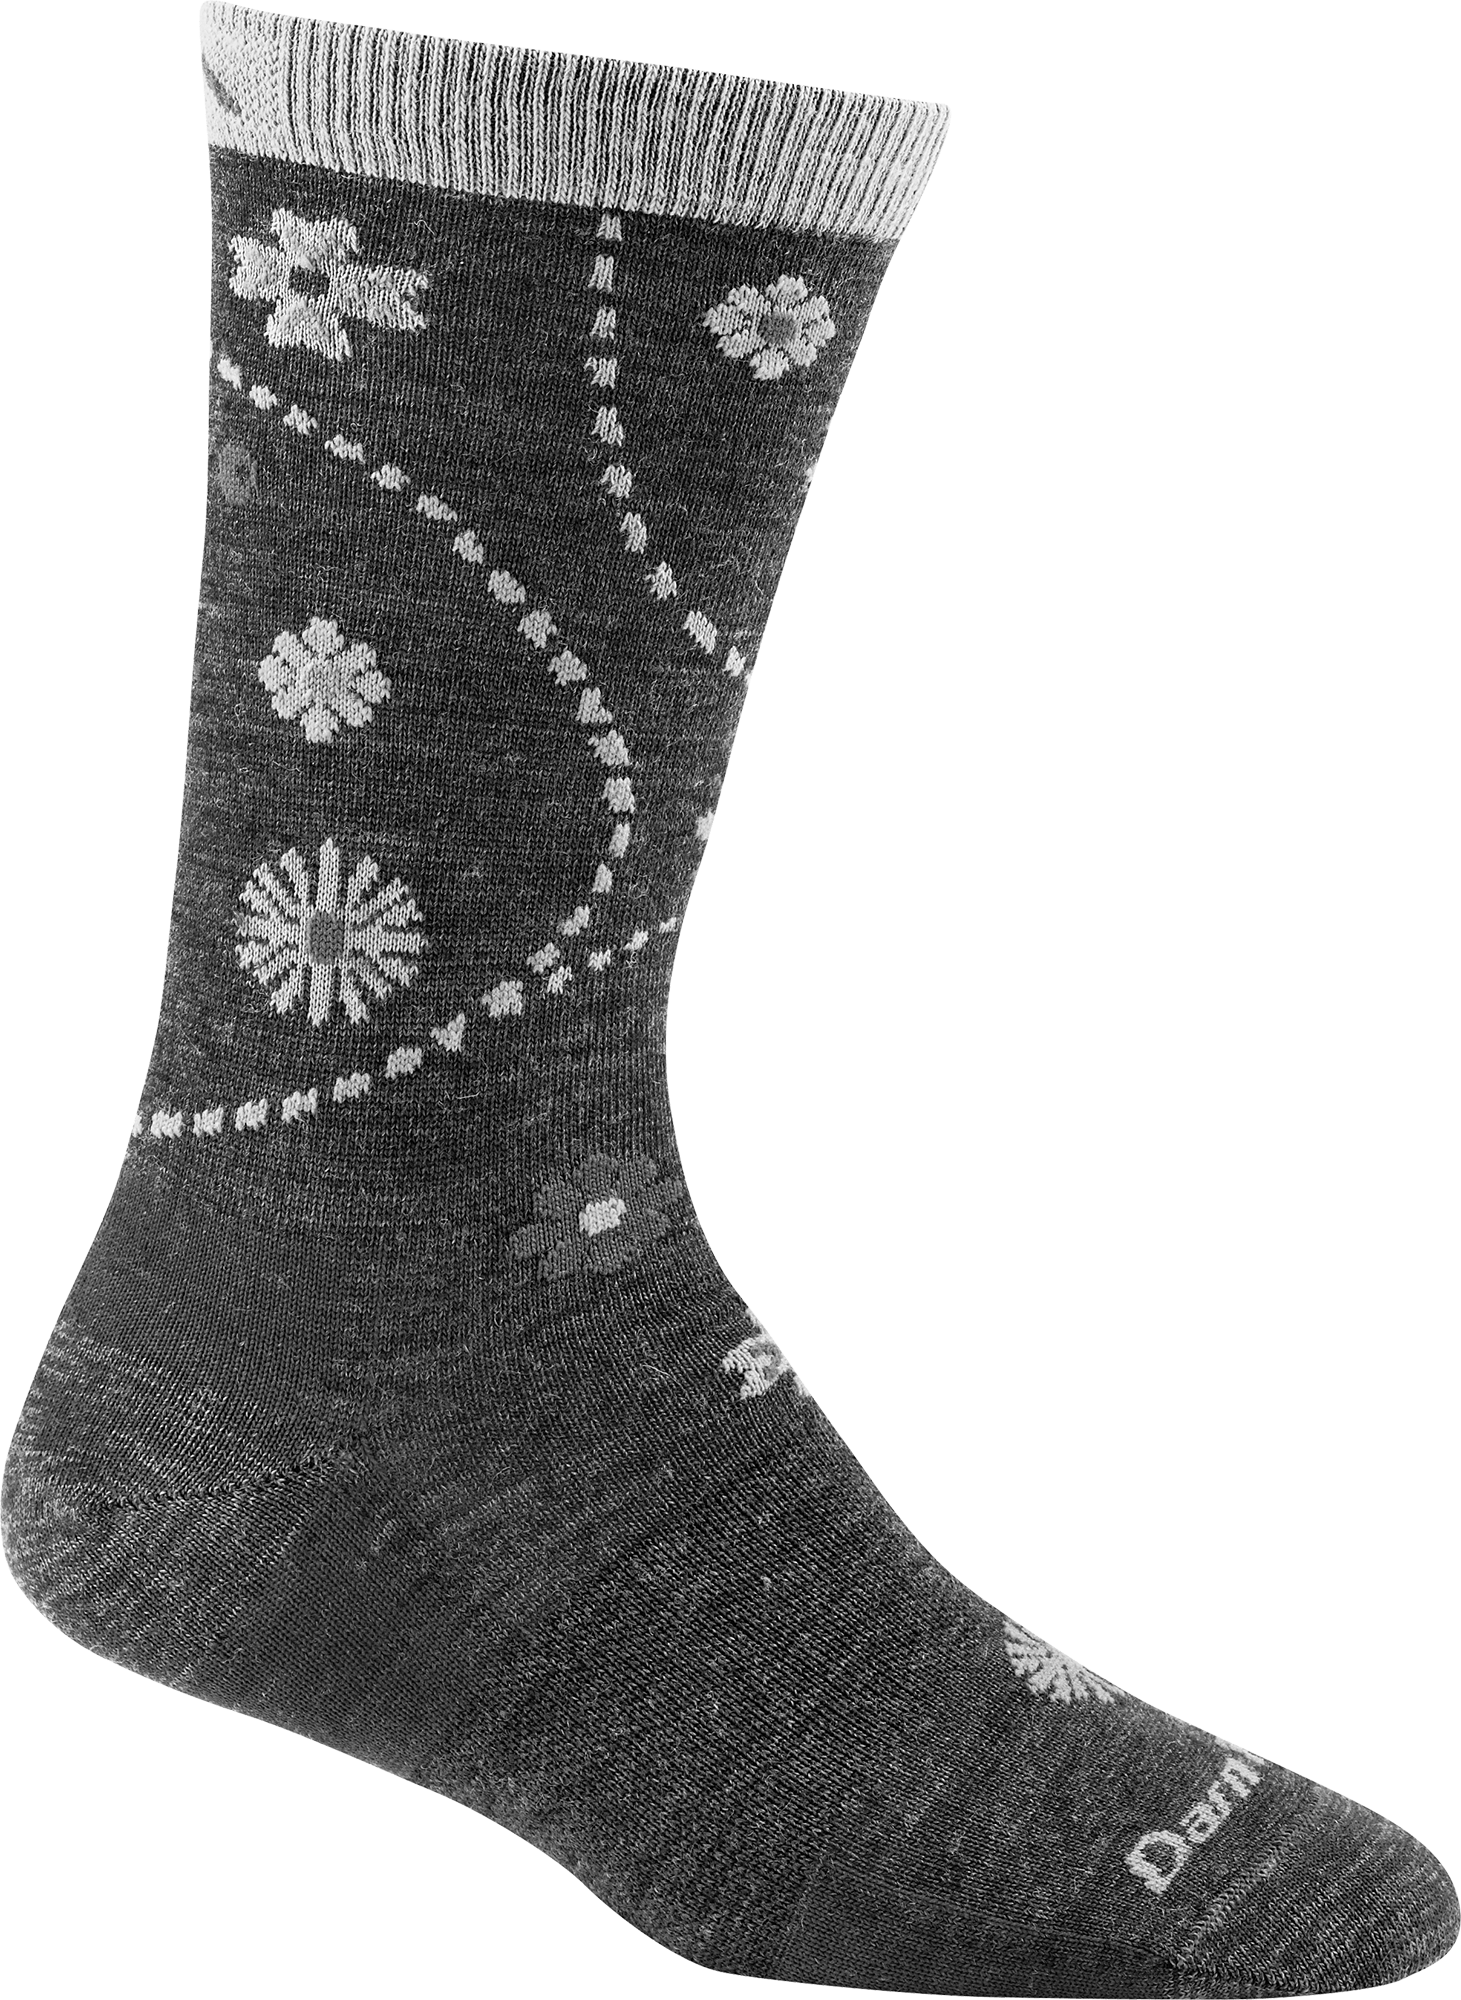 Cushion Location: Lifestyle socks with no cushion offer the standard feel for daily-use casual …